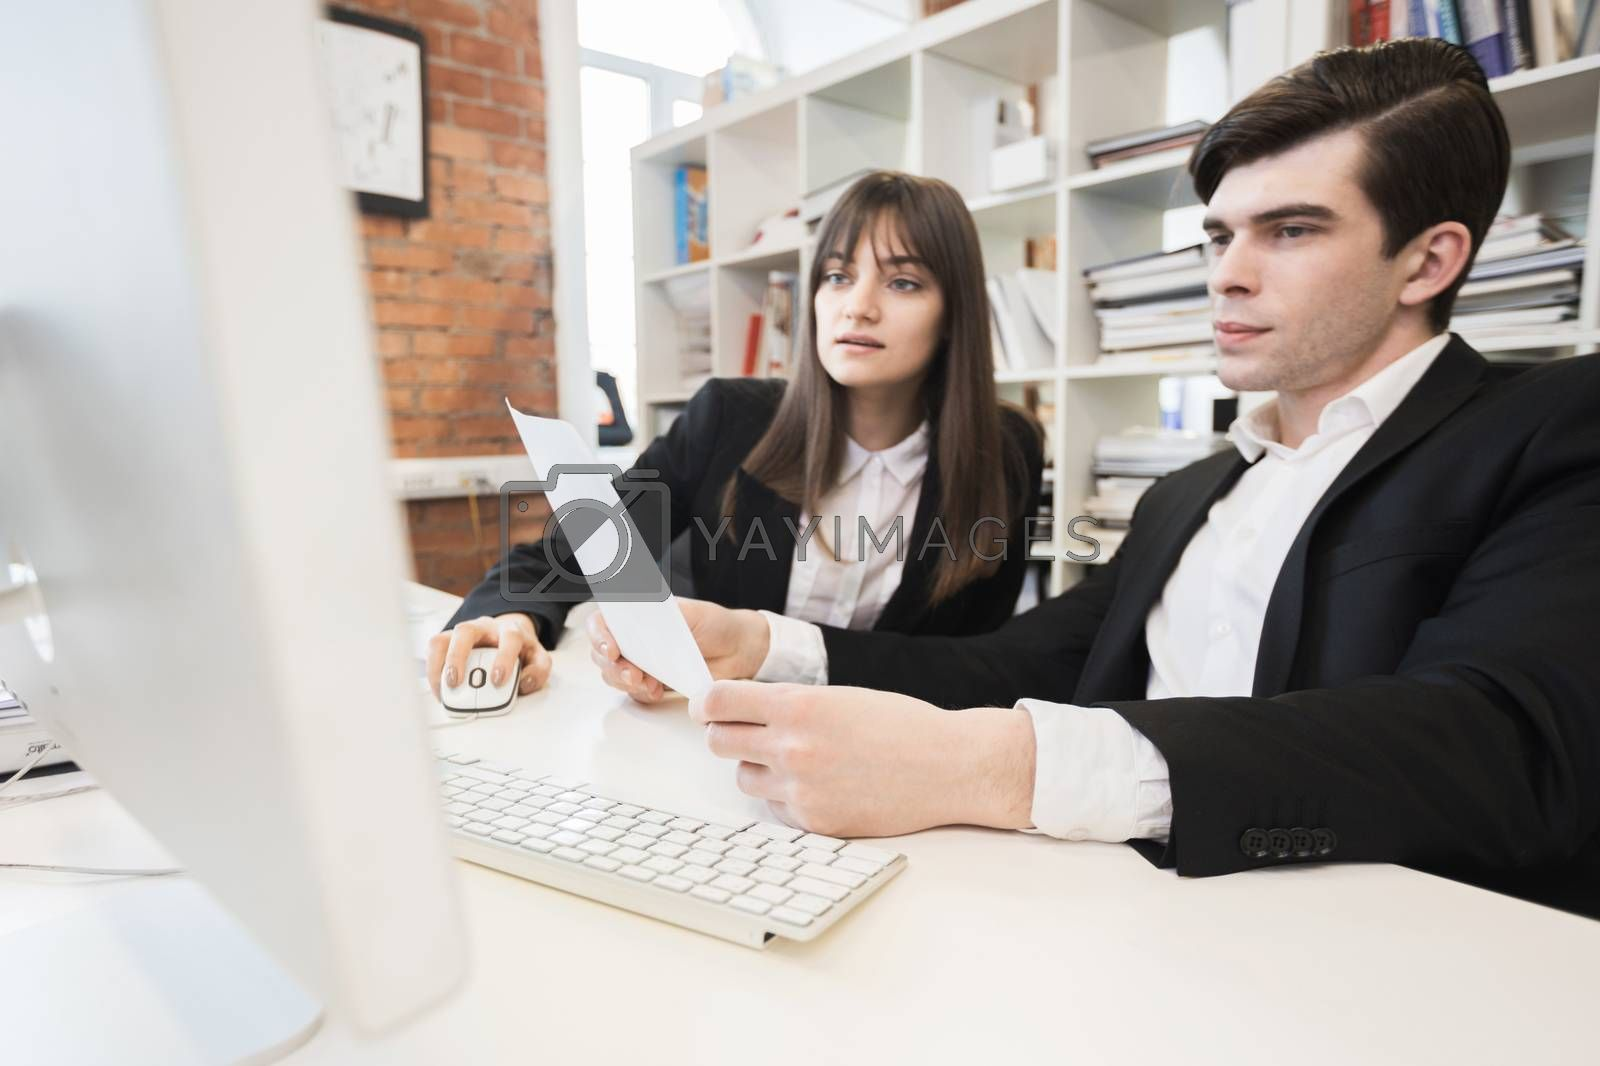 Two business people working together with documents sitting in front of computer monitor in office